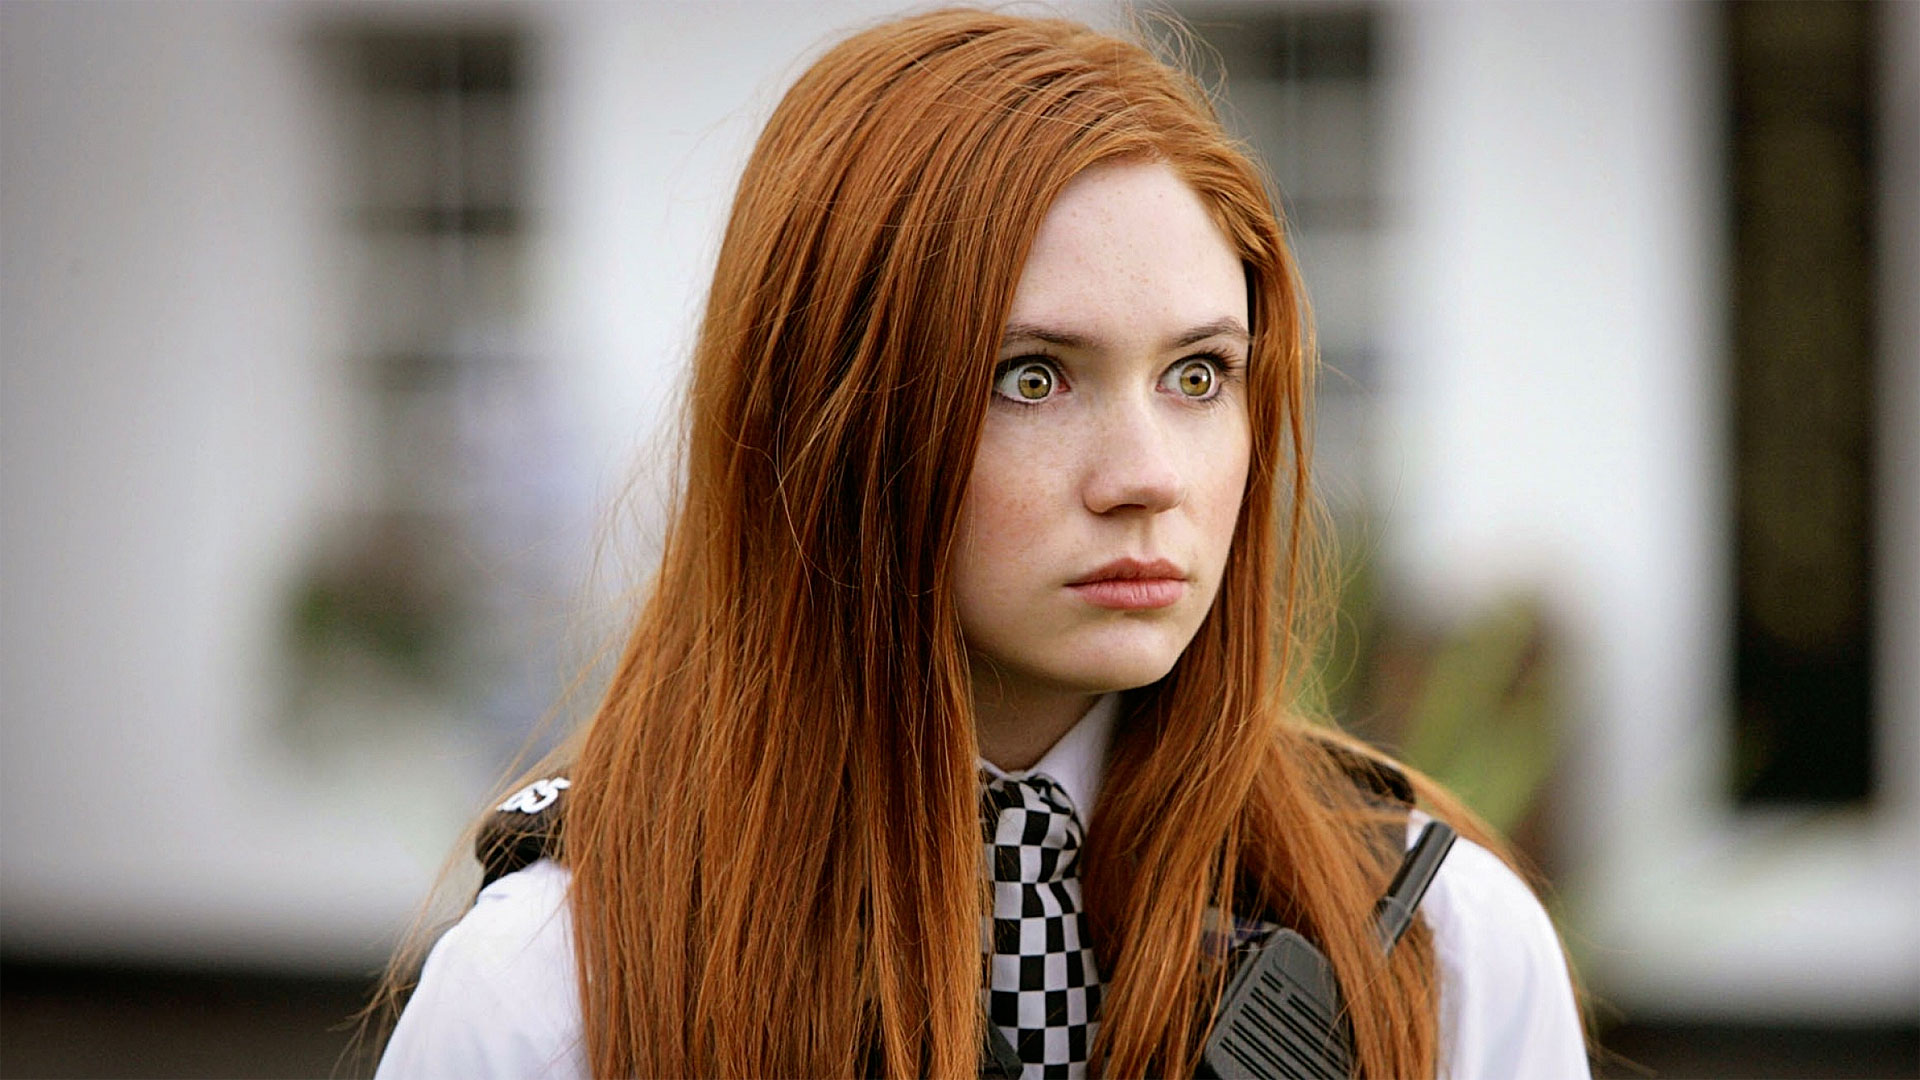 Karen Gillan could be playing a female version of The Mask